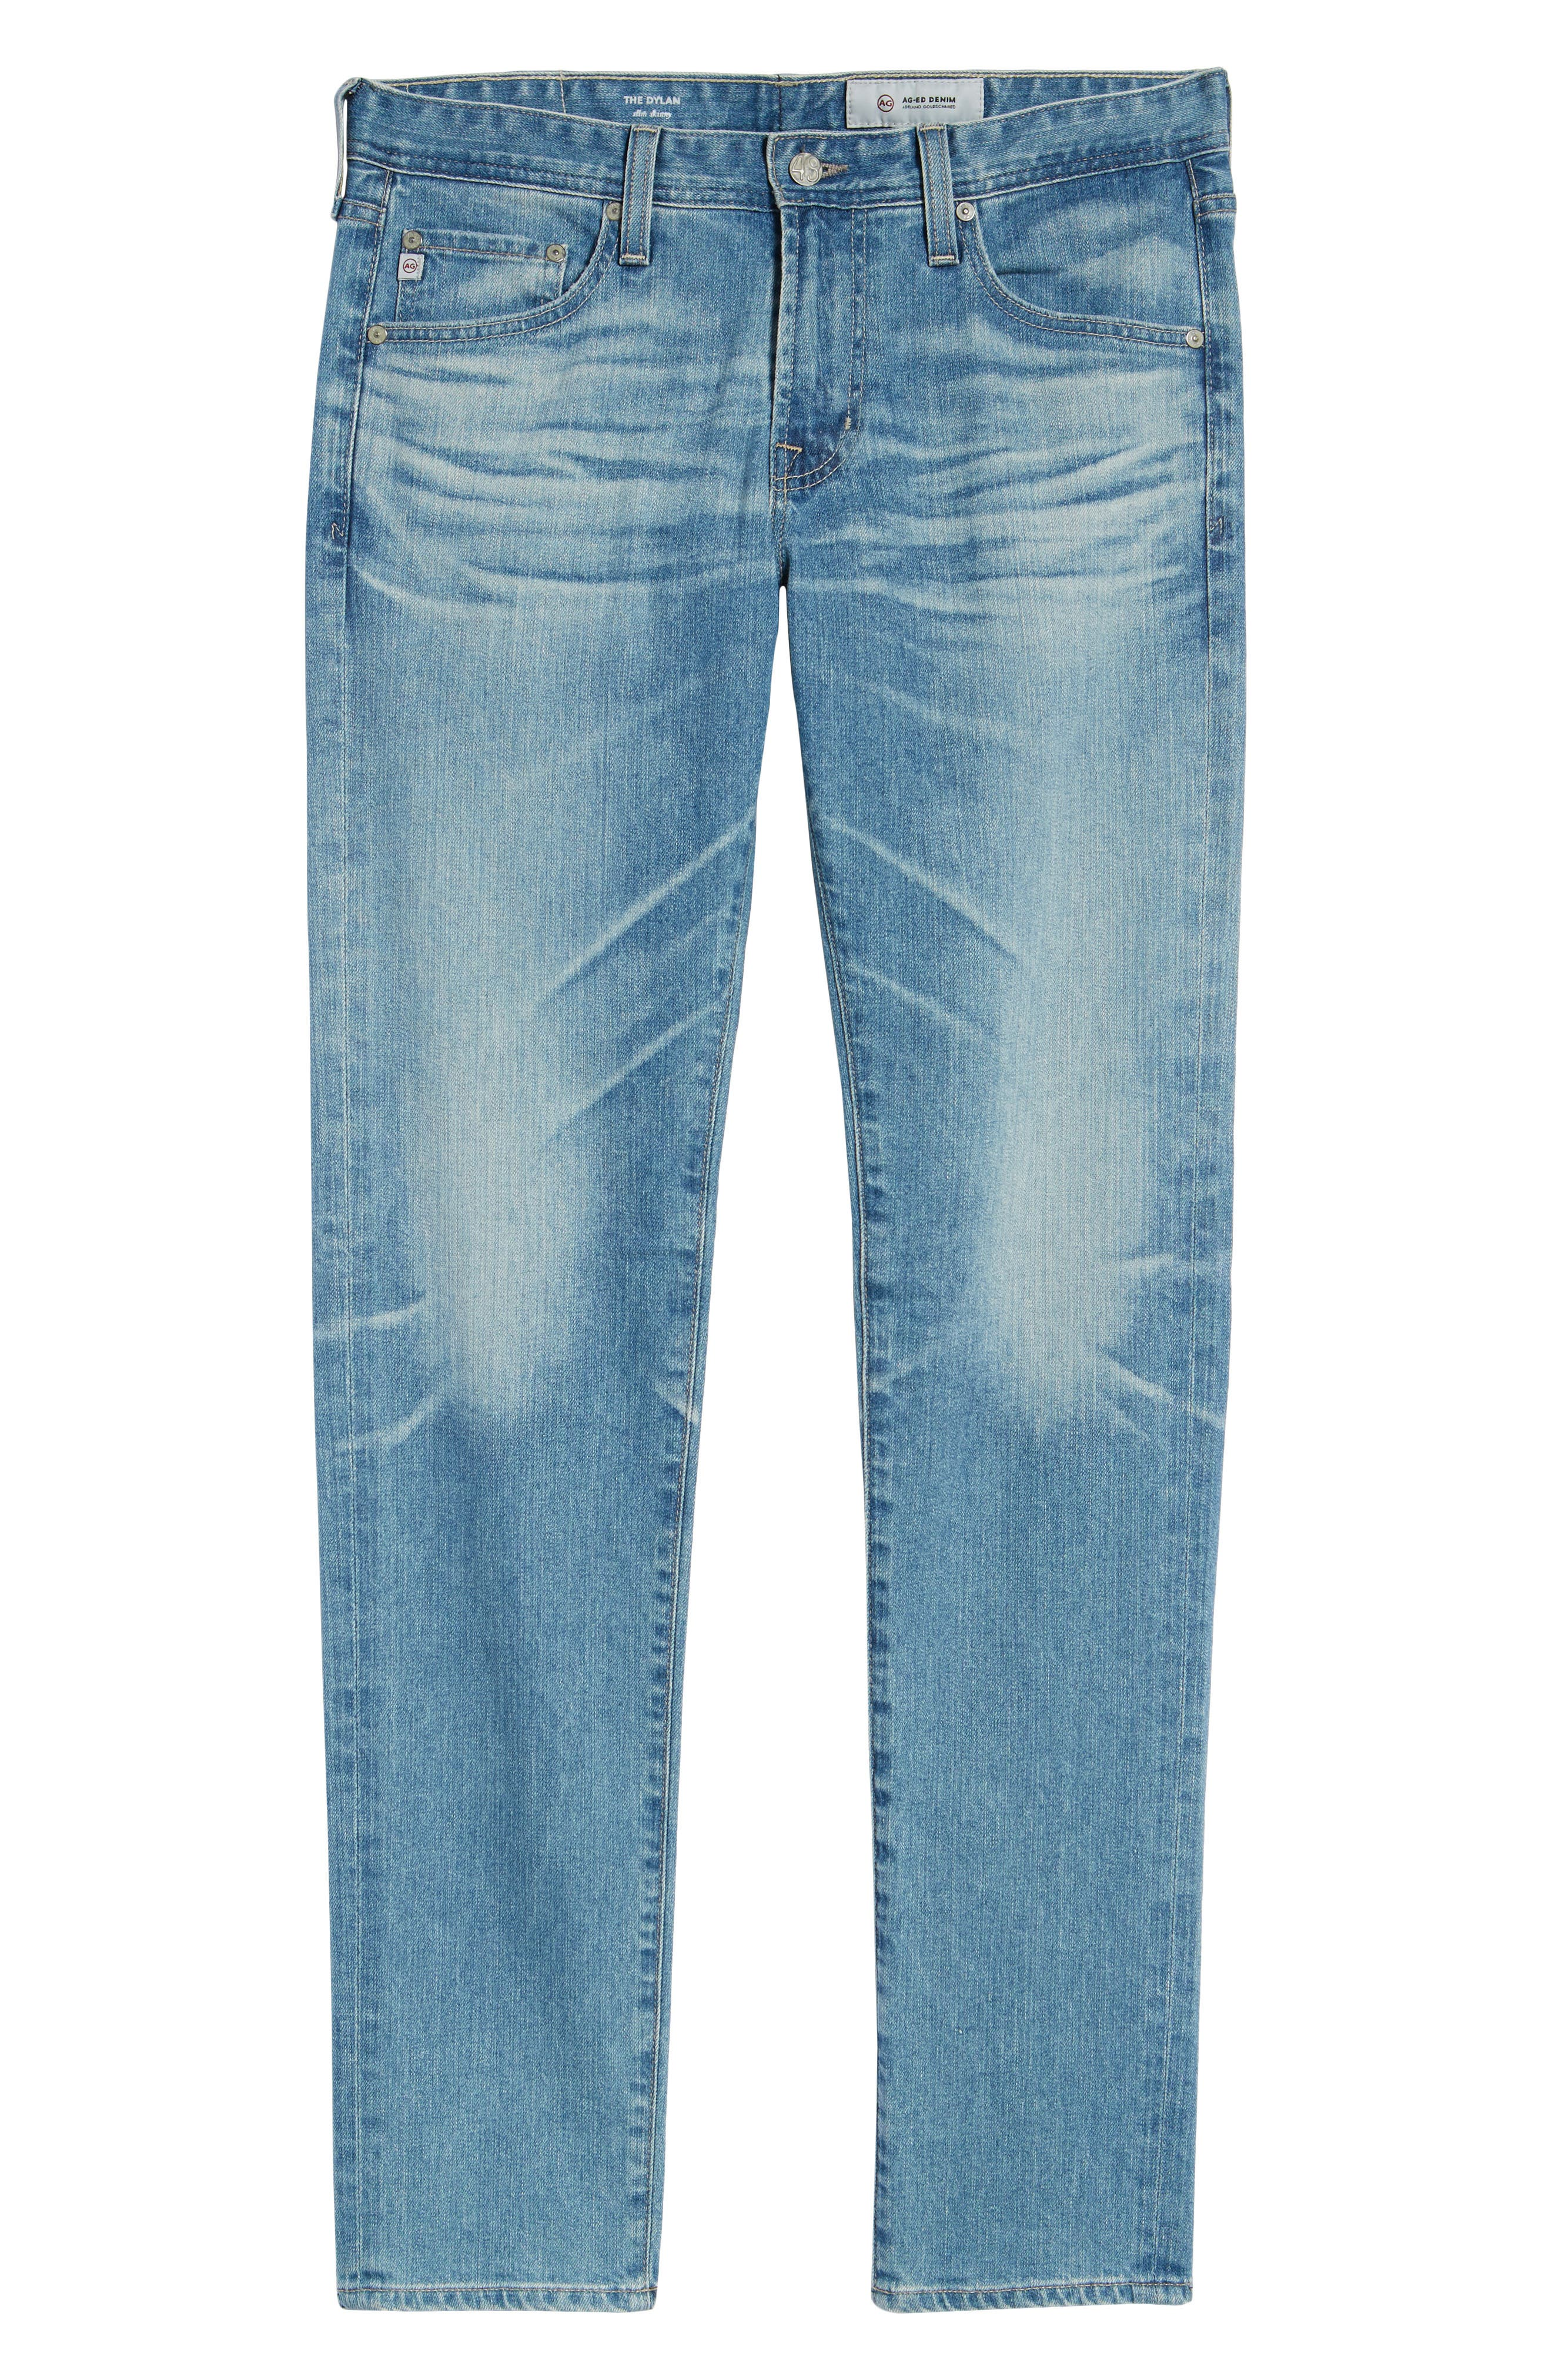 Dylan Skinny Fit Jeans,                             Alternate thumbnail 6, color,                             18 Years Oceano